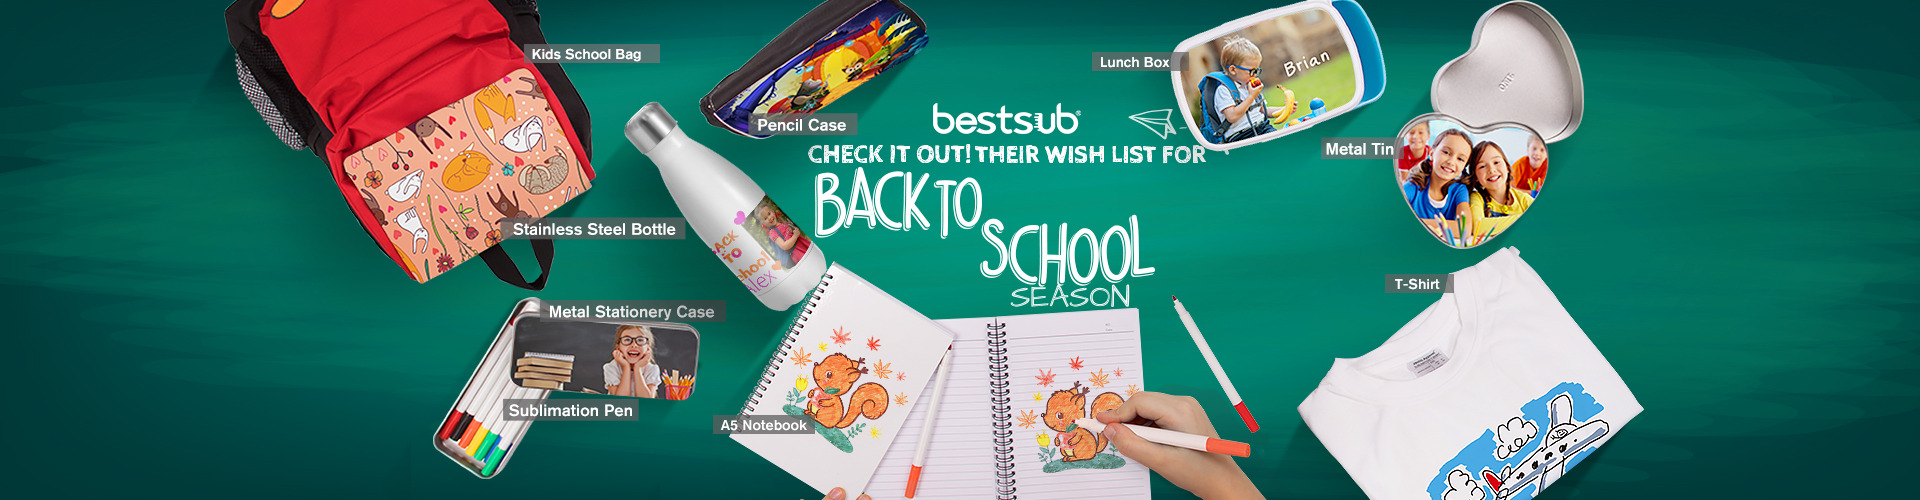 2019-8-7_Check_It_out!_Their_Wish_List_for_Back-to-School_Season_new_web